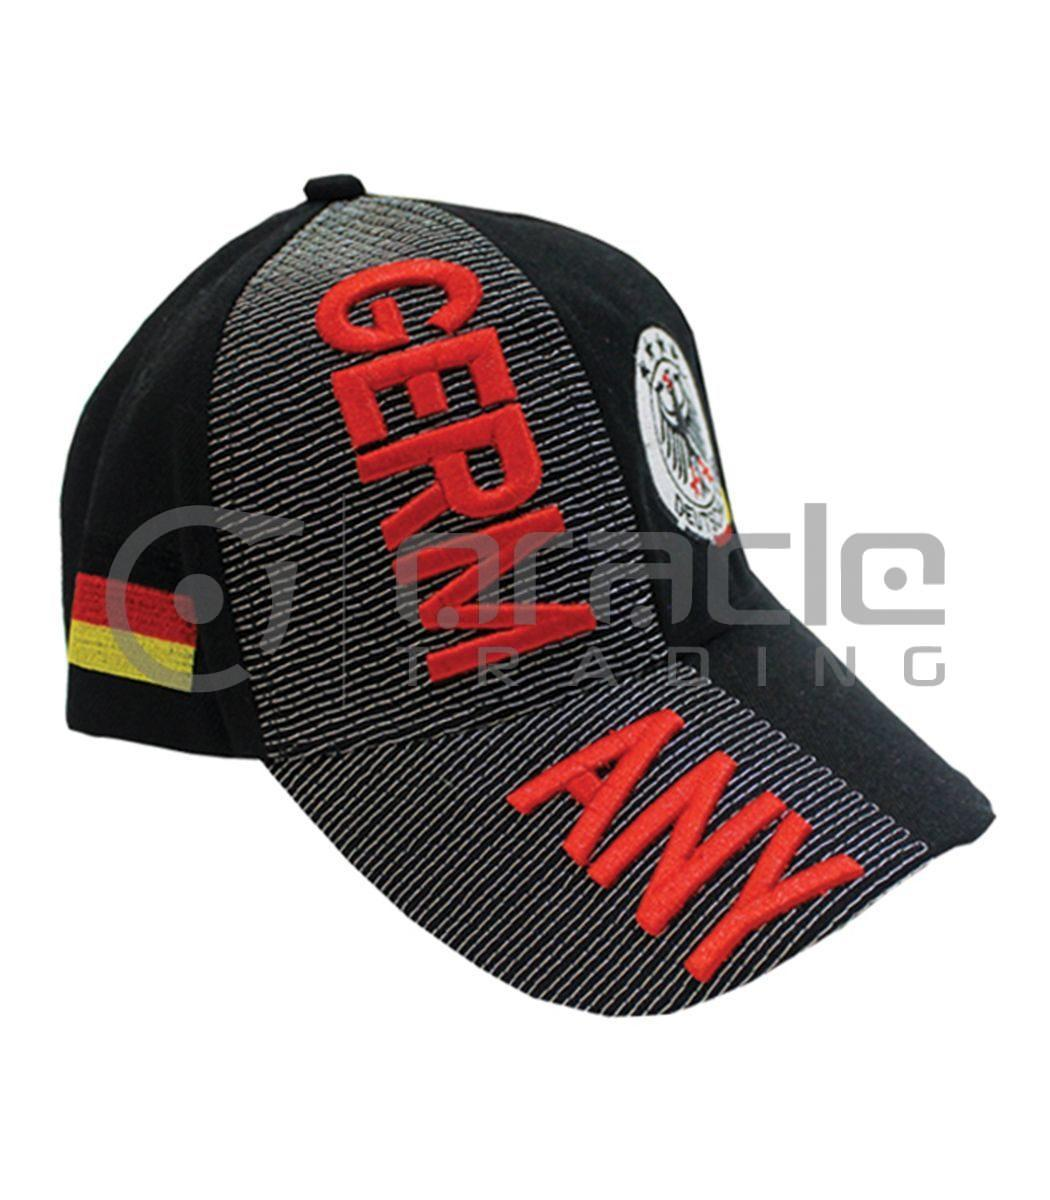 3D Germany Hat - Black - 4-Star